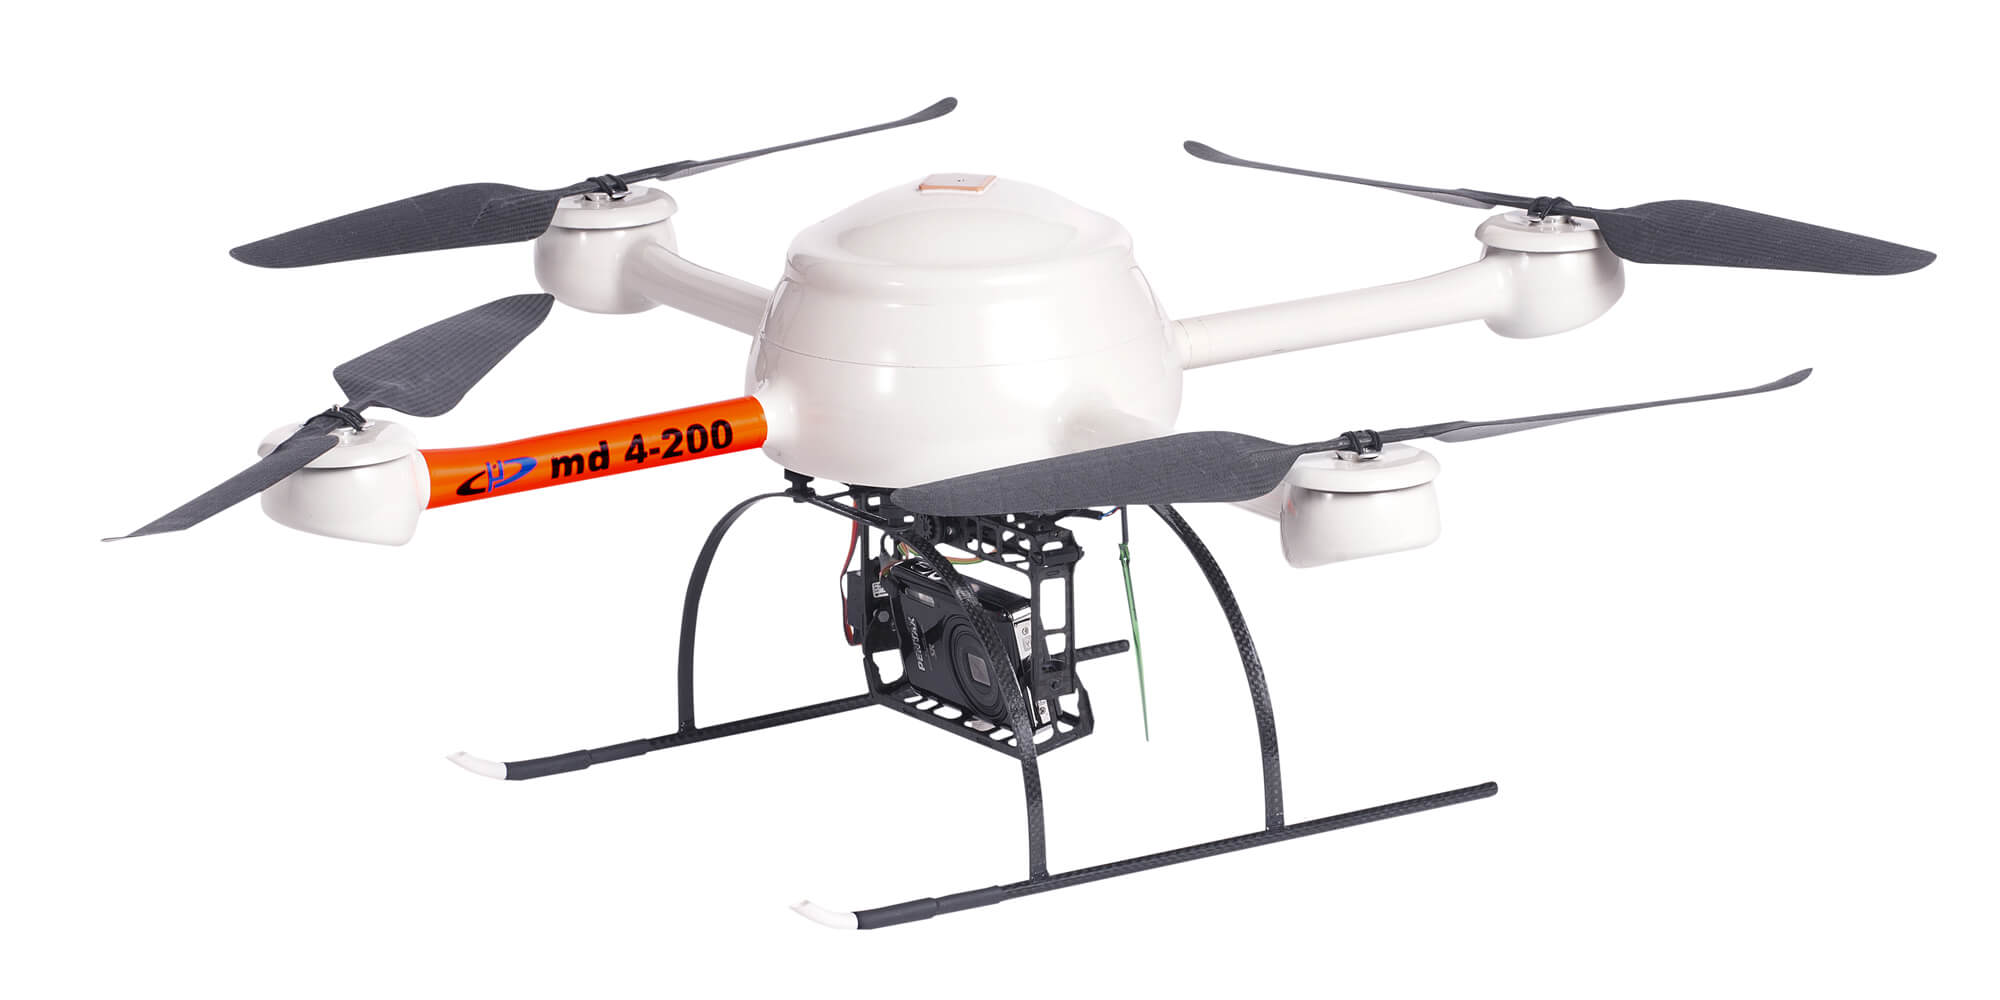 md4-200 Microdrones - Drones